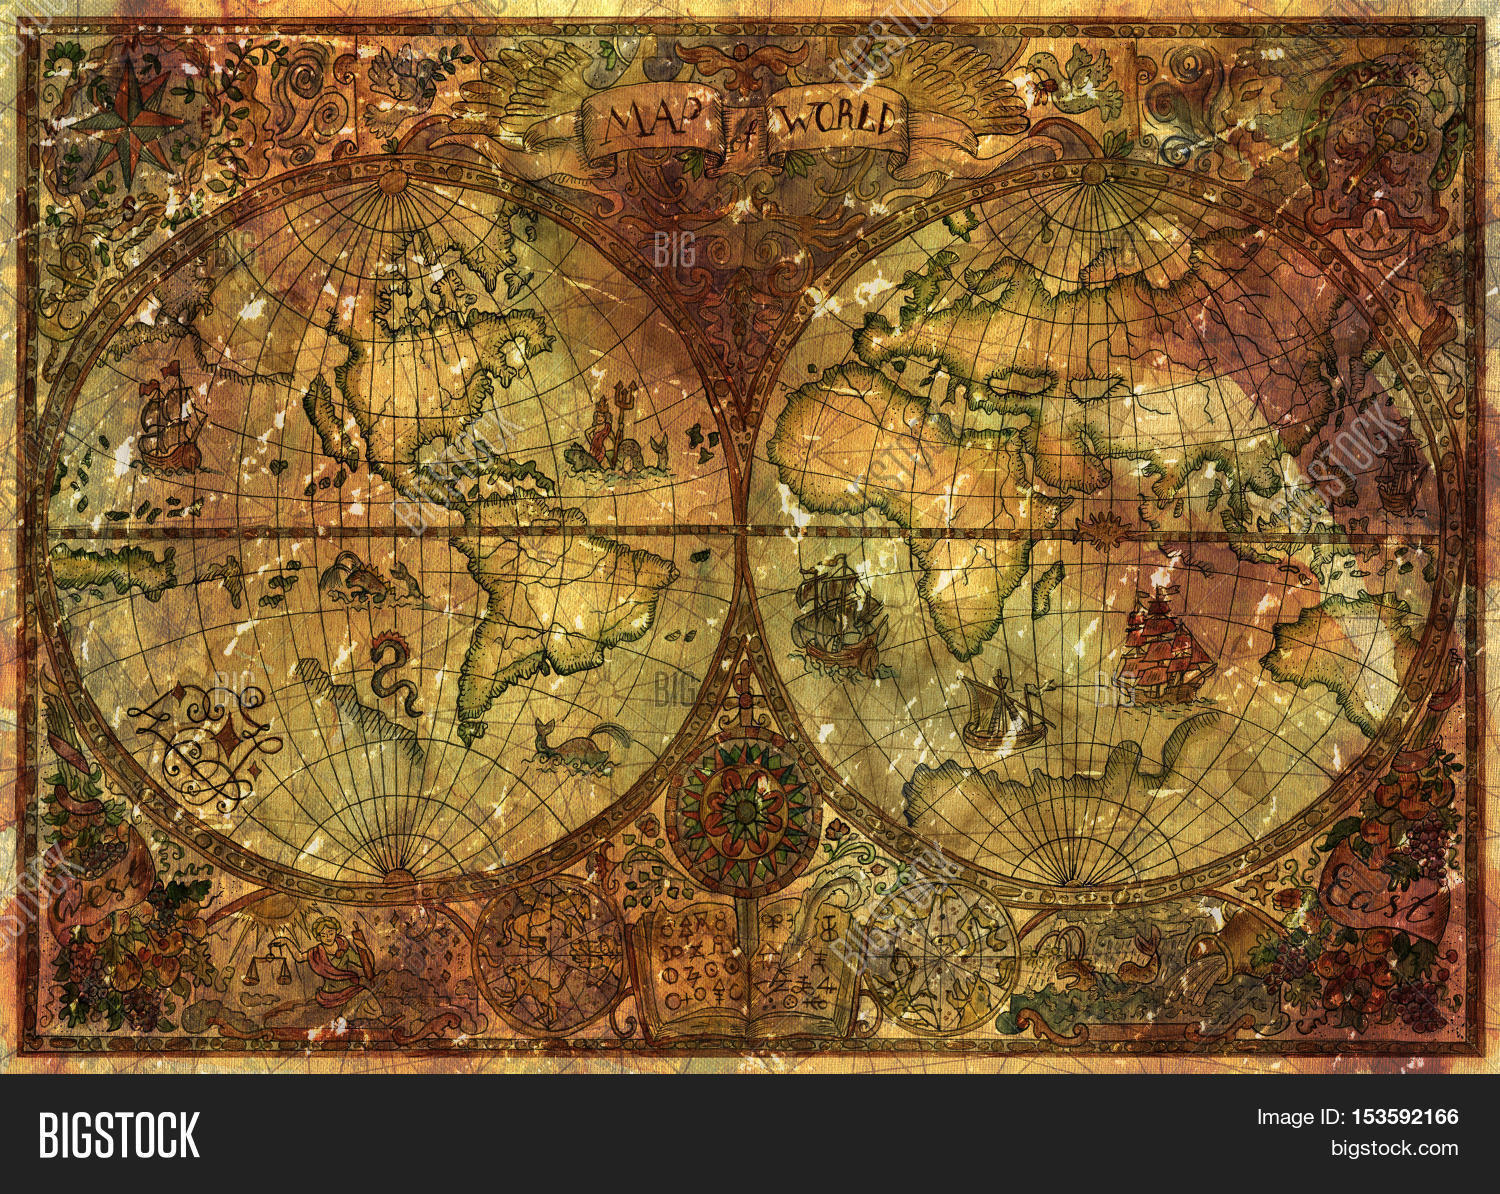 adventure,aged,ancient,antique,artwork,atlas,background,boat,cartography,drawing,geographic,graphic,grunge,history,hunt,illustration,island,land,manuscript,map,mystic,mythology,nautical,old,paper,parchment,pirate,sailboat,ship,textured,travel,treasure,vessel,vintage,navigate,world,america,asia,frame,global,earth,art,oceans,rustic,retro,africa,decorative,decoupage,page,symbols